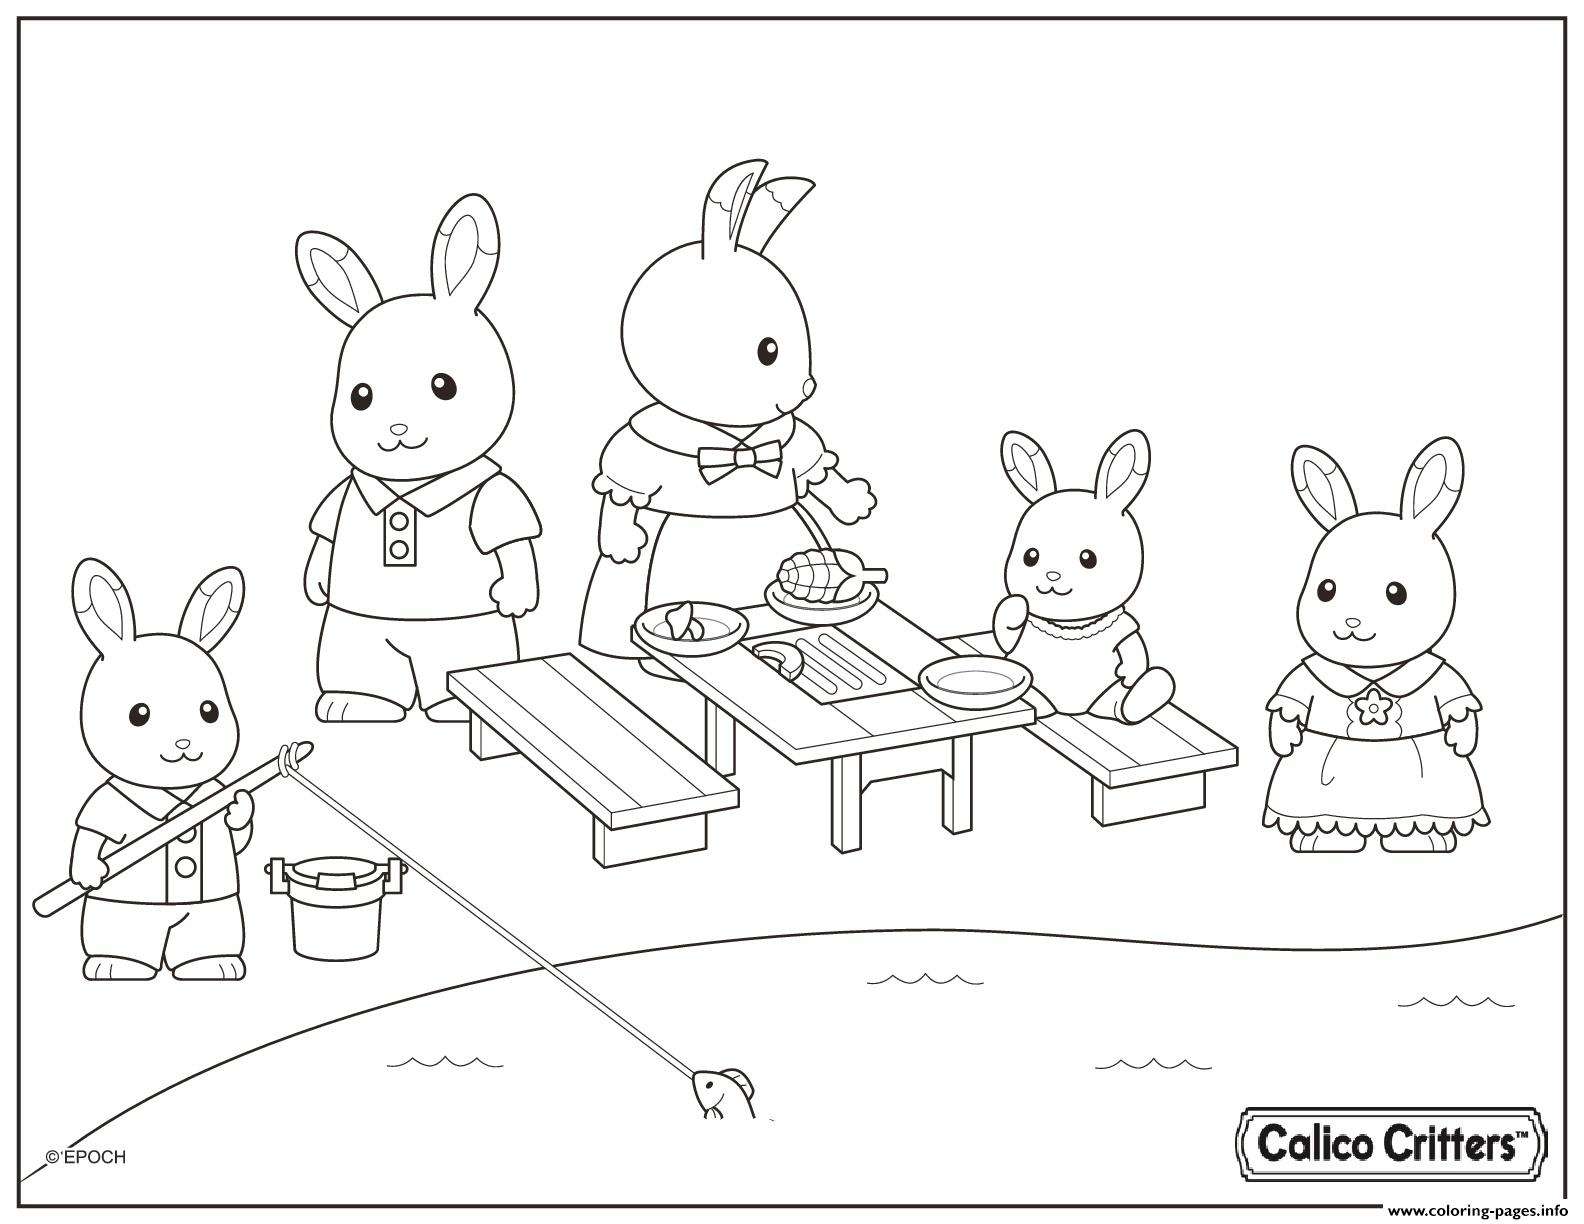 Calico Critters Having Fun Picnic coloring pages